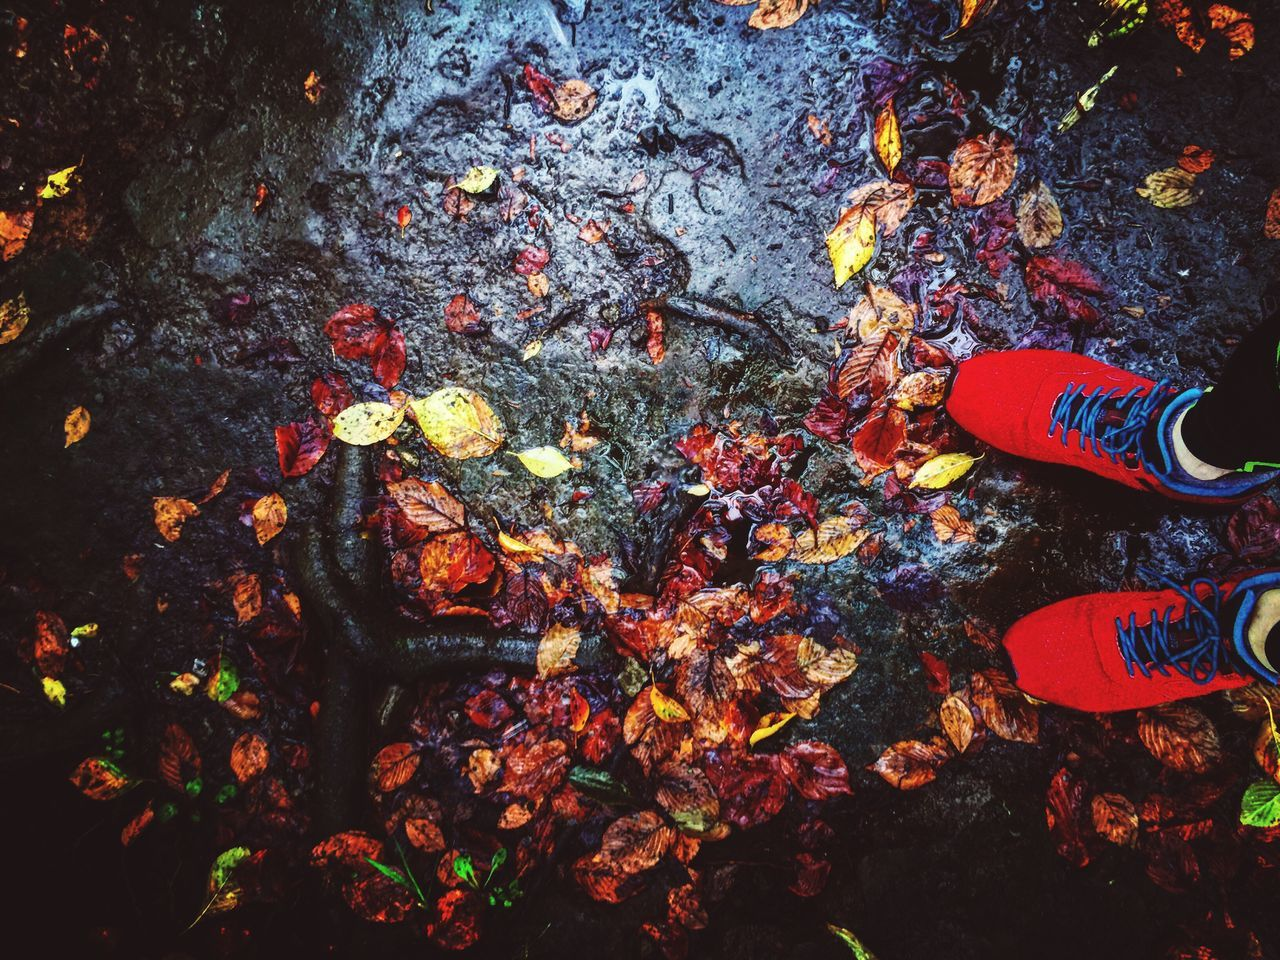 autumn, high angle view, shoe, change, real people, human leg, outdoors, nature, leaf, day, directly above, standing, low section, water, human body part, one person, beauty in nature, close-up, people